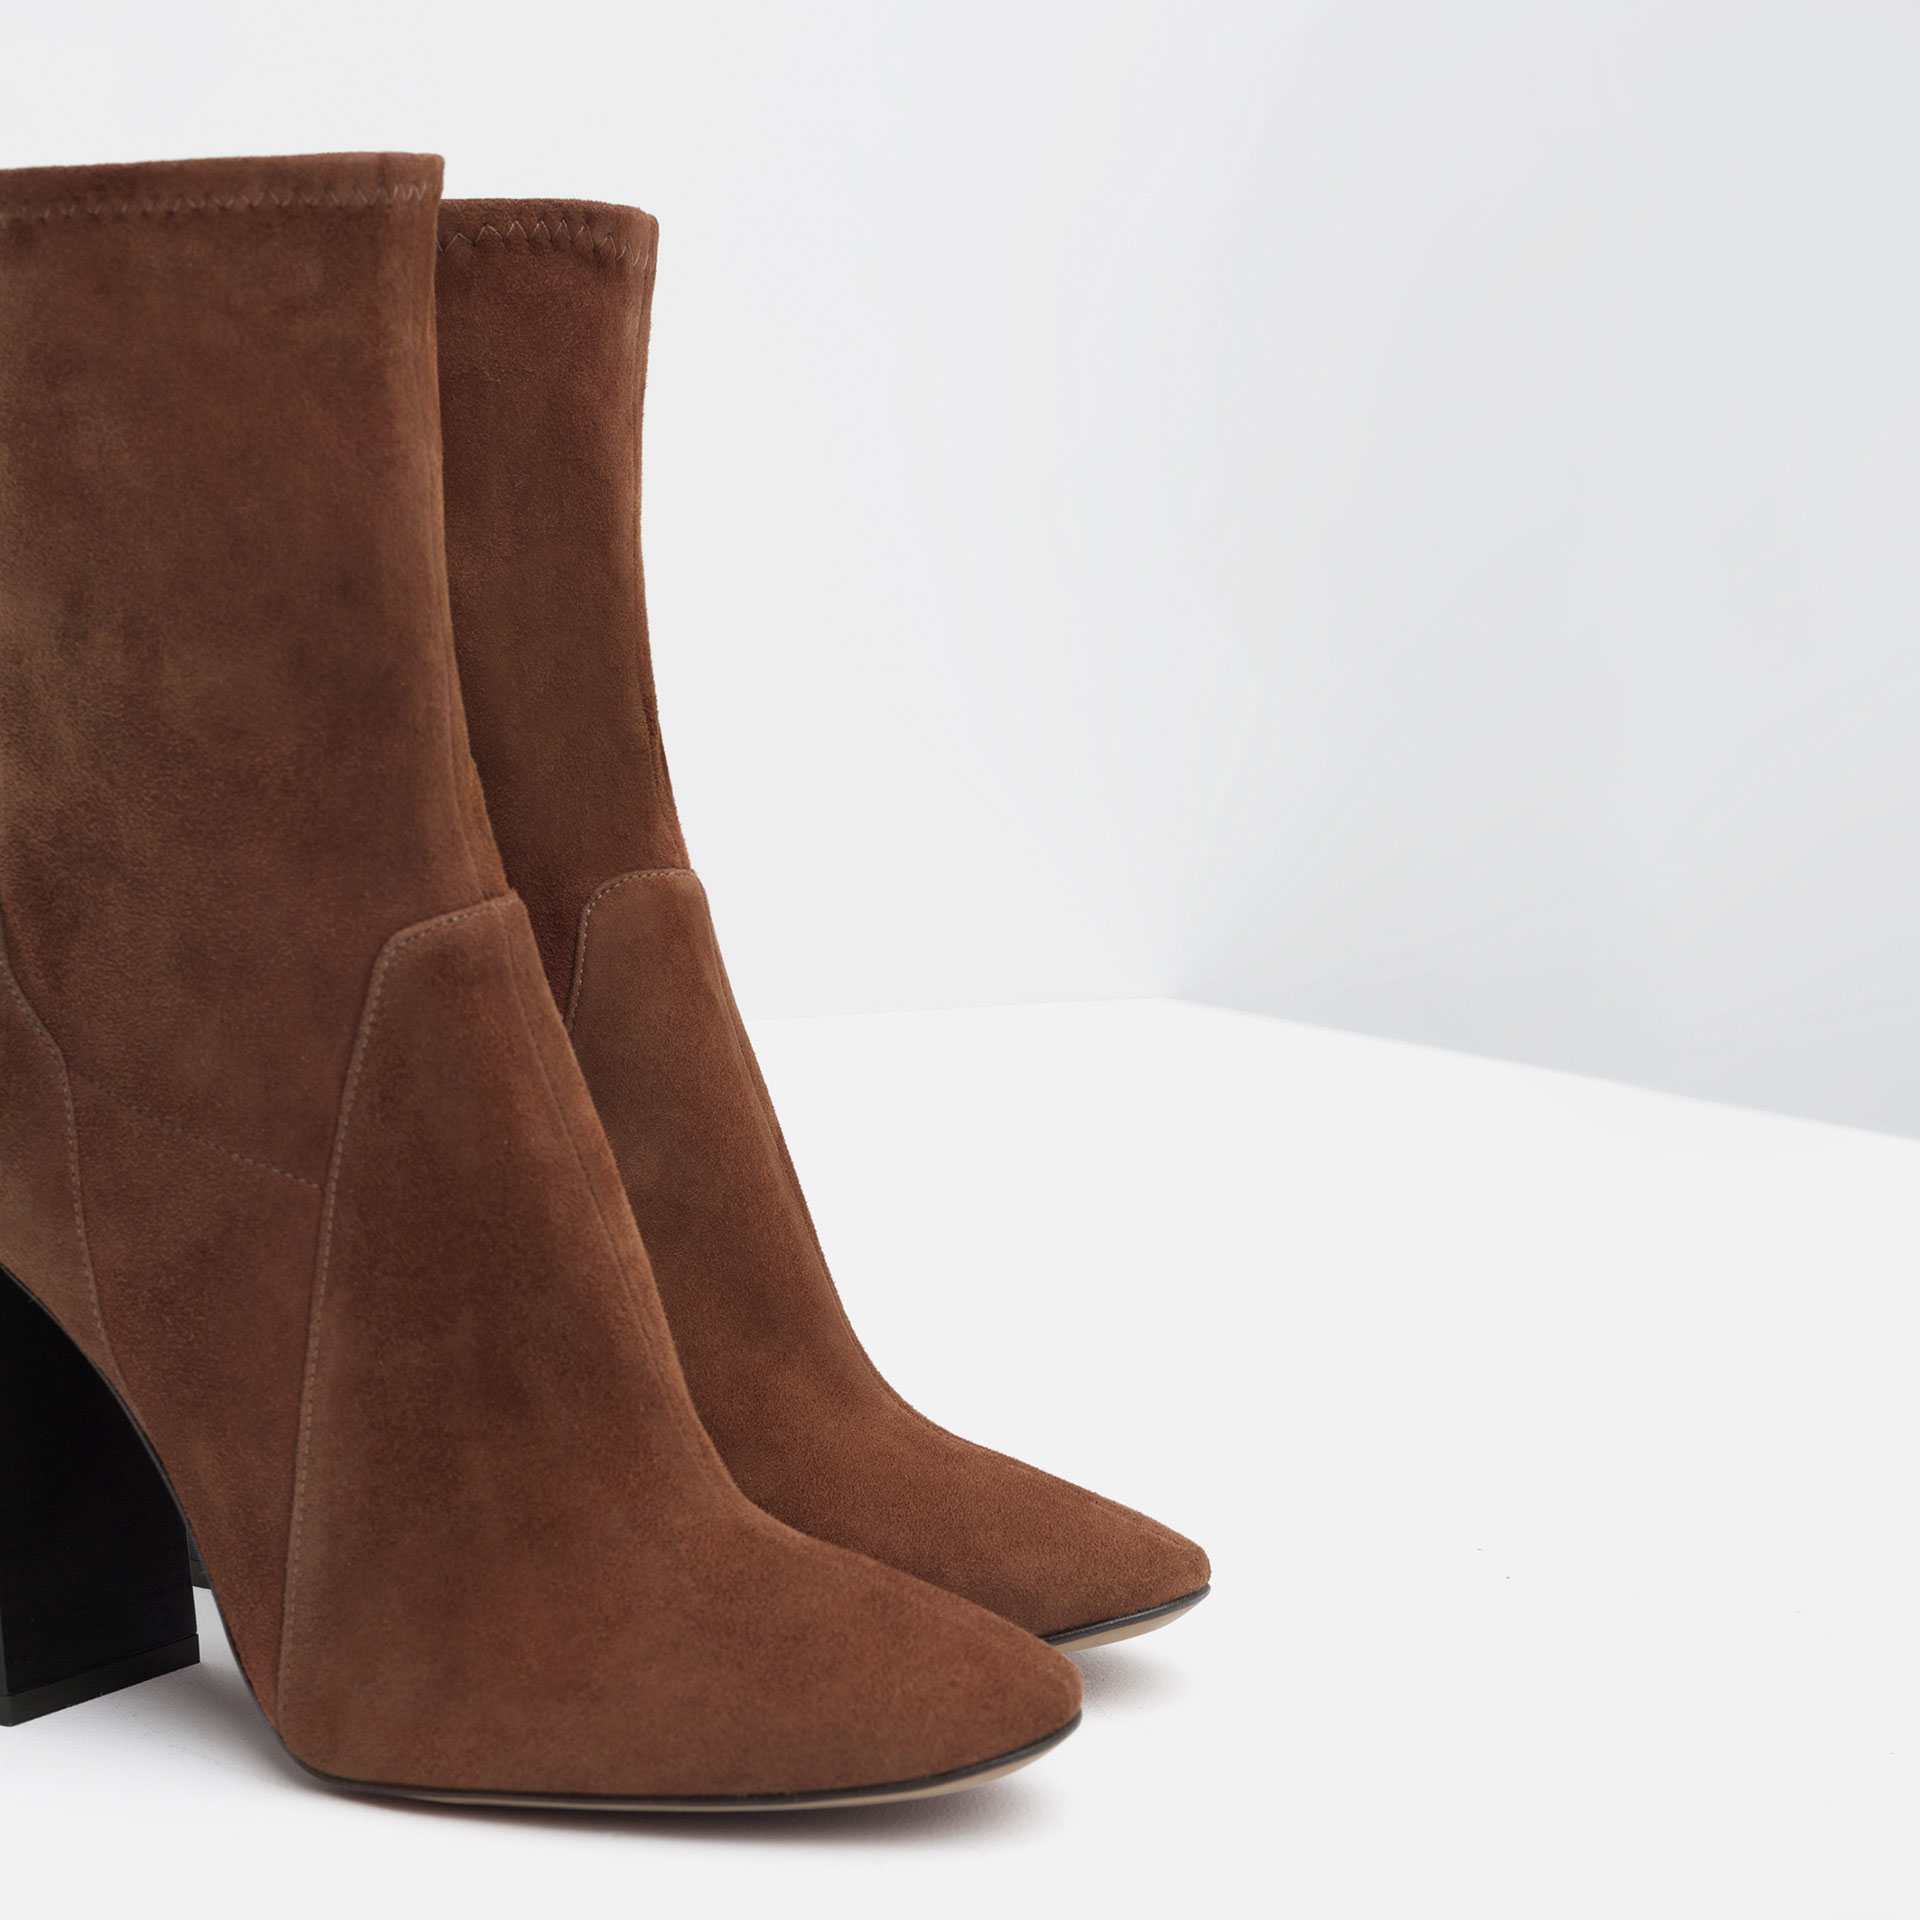 Zara Leather High Heel Ankle Boots in Brown | Lyst